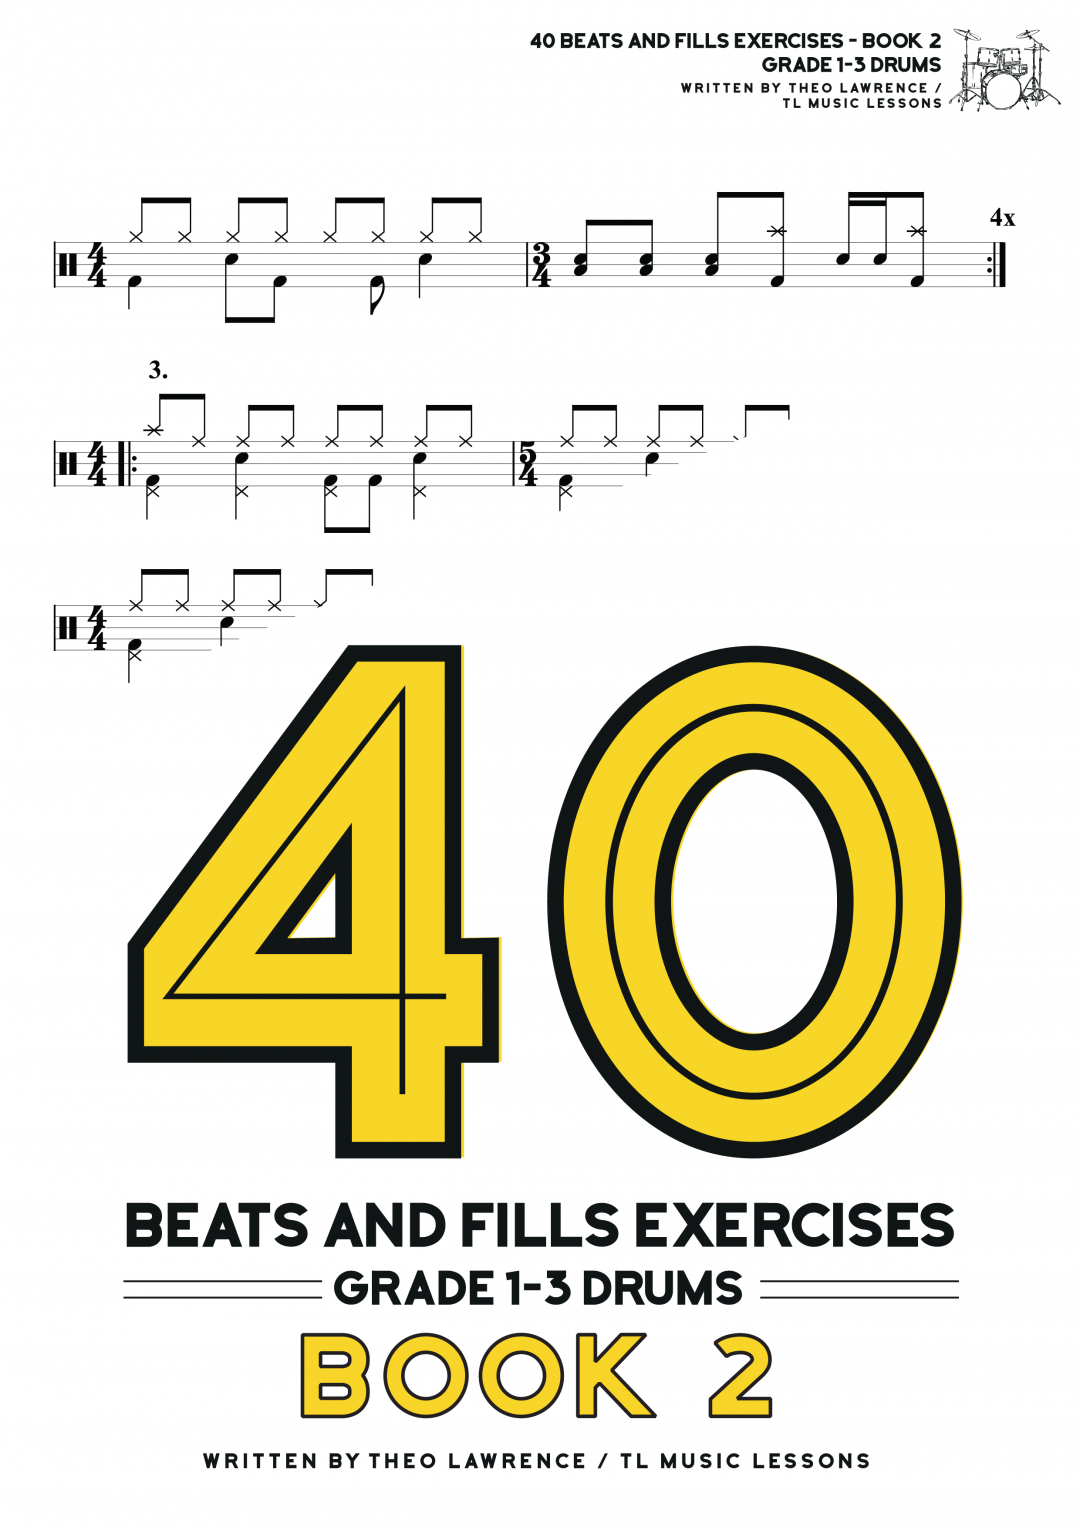 40 Beats and Fills Exercises Book 2